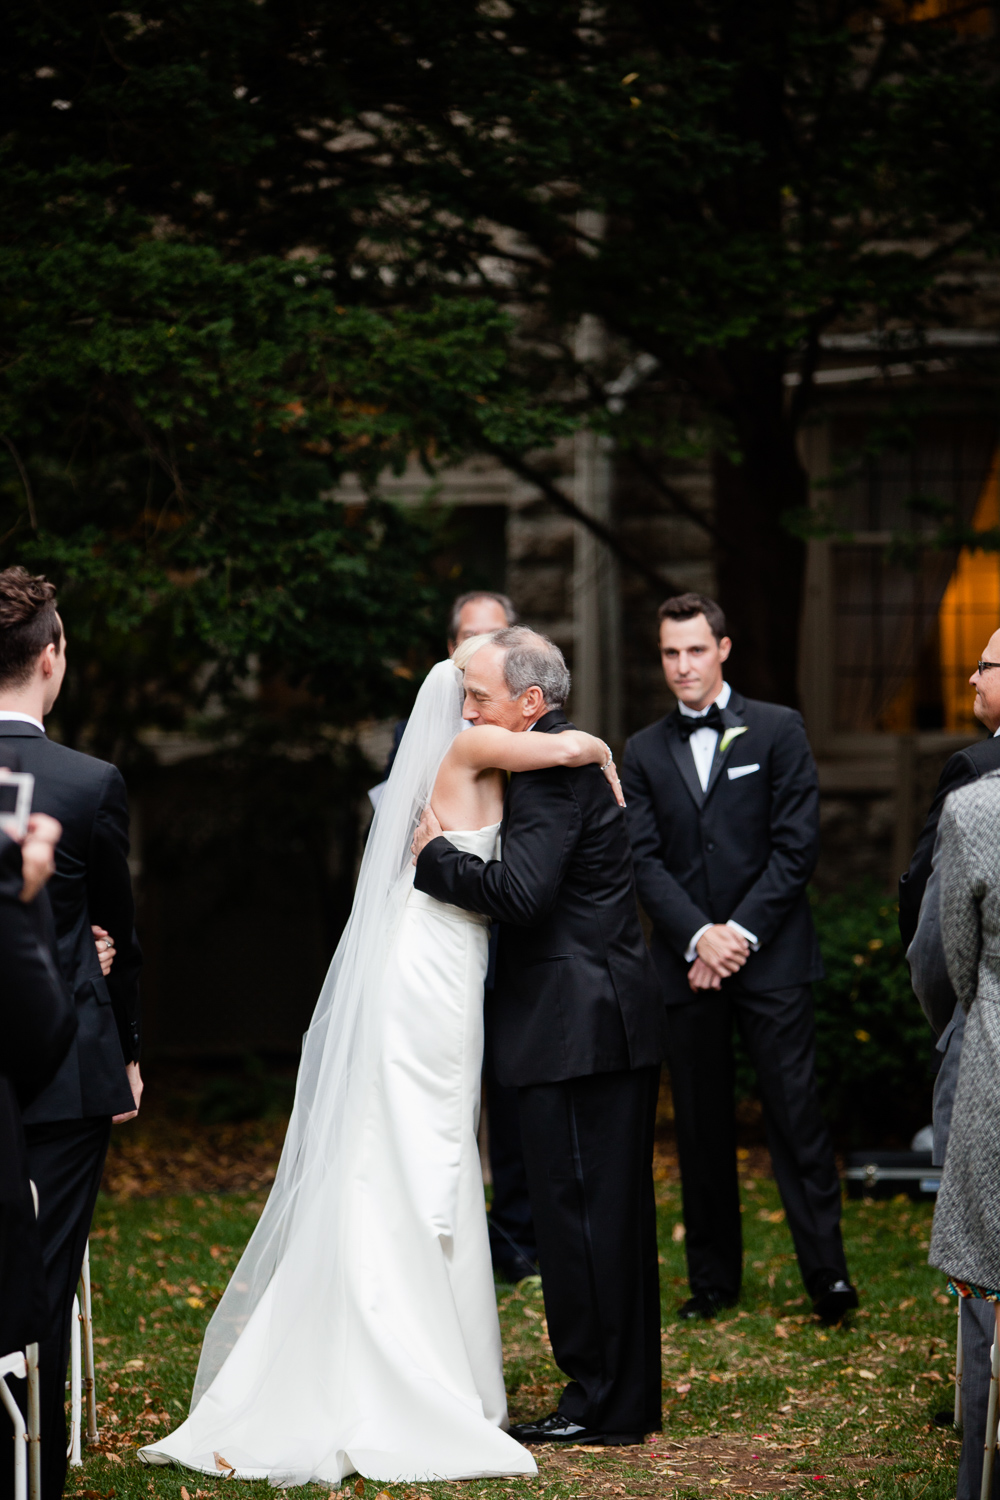 clewell minneapolis wedding photographer-158113202738699.jpg